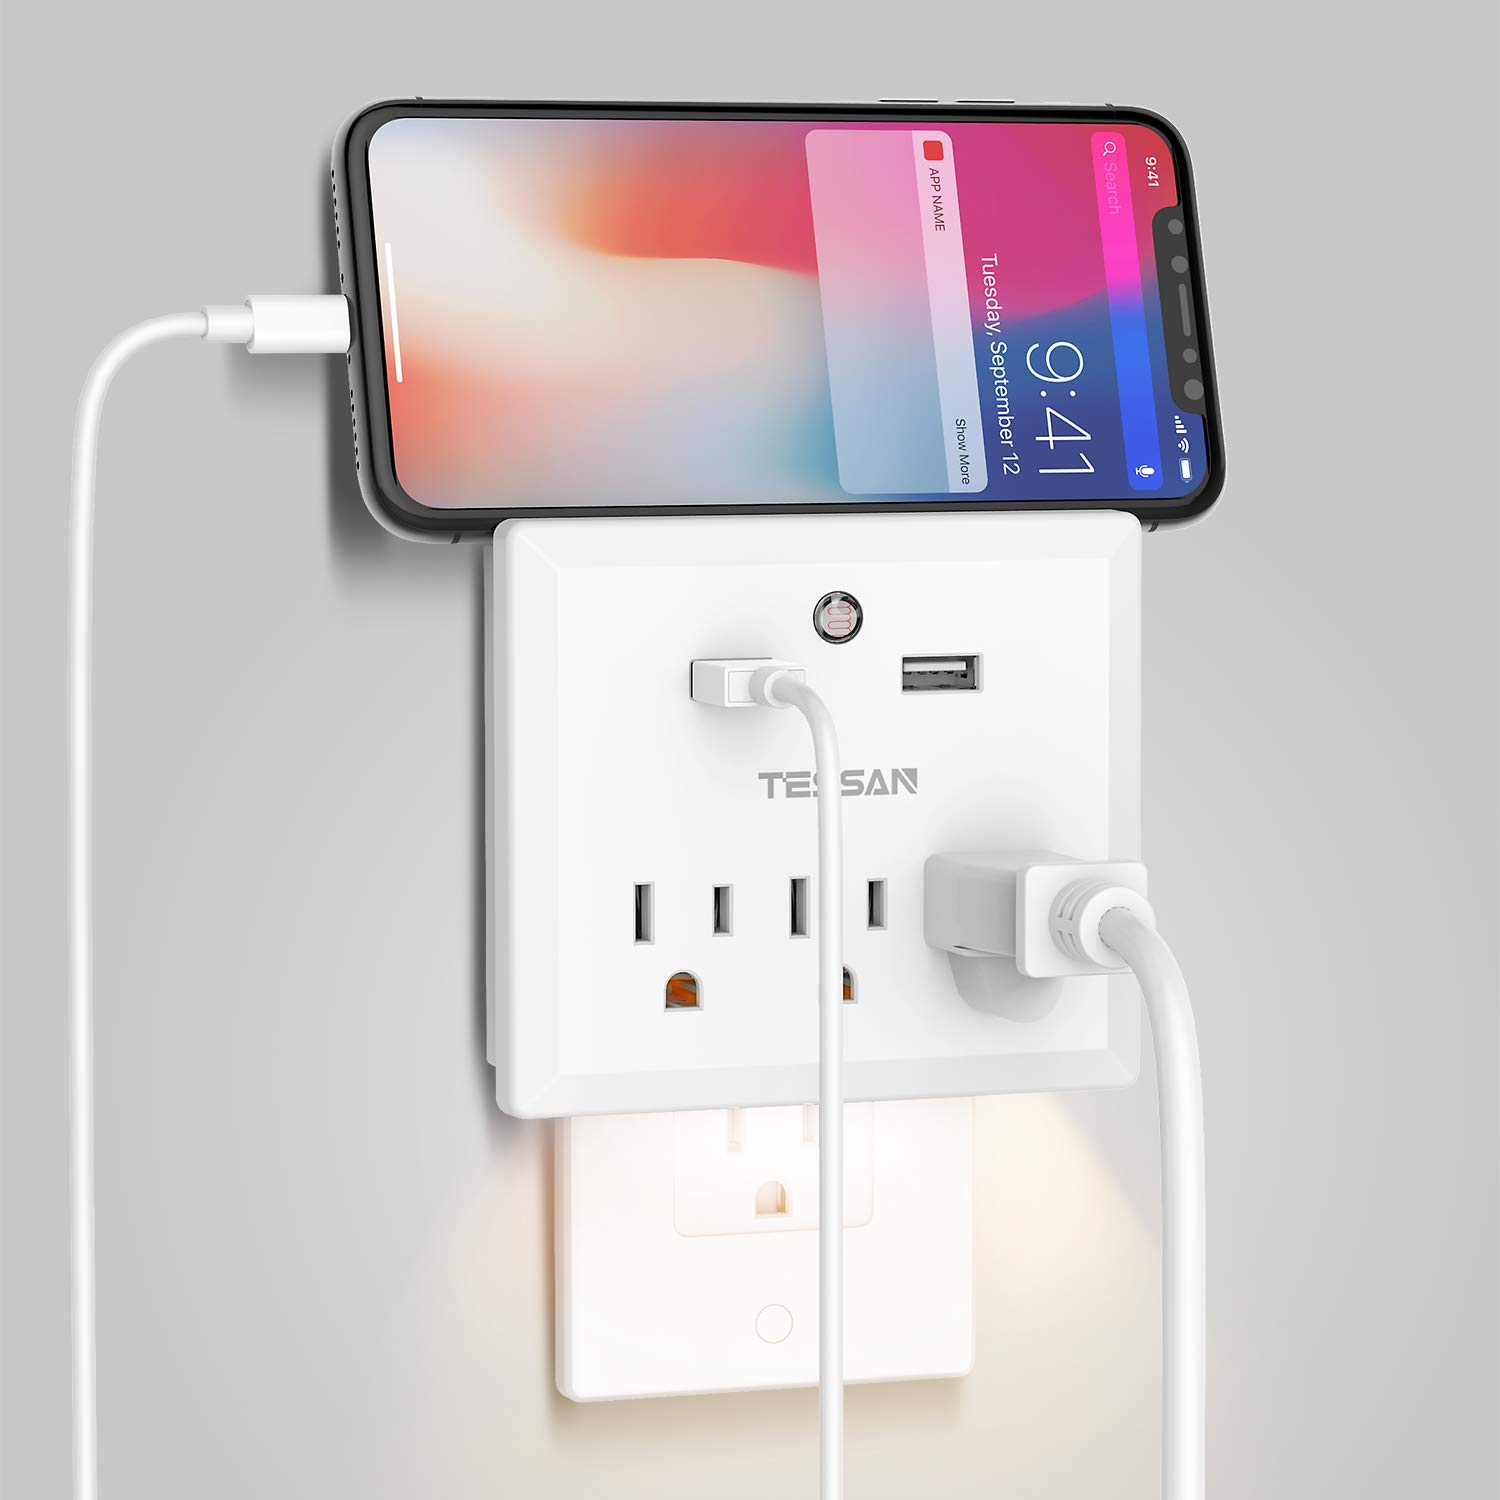 USB Wall Outlet Extender with Night Light, Multi Outlet Plug USB, Travel Power Strip for Cruise Ship